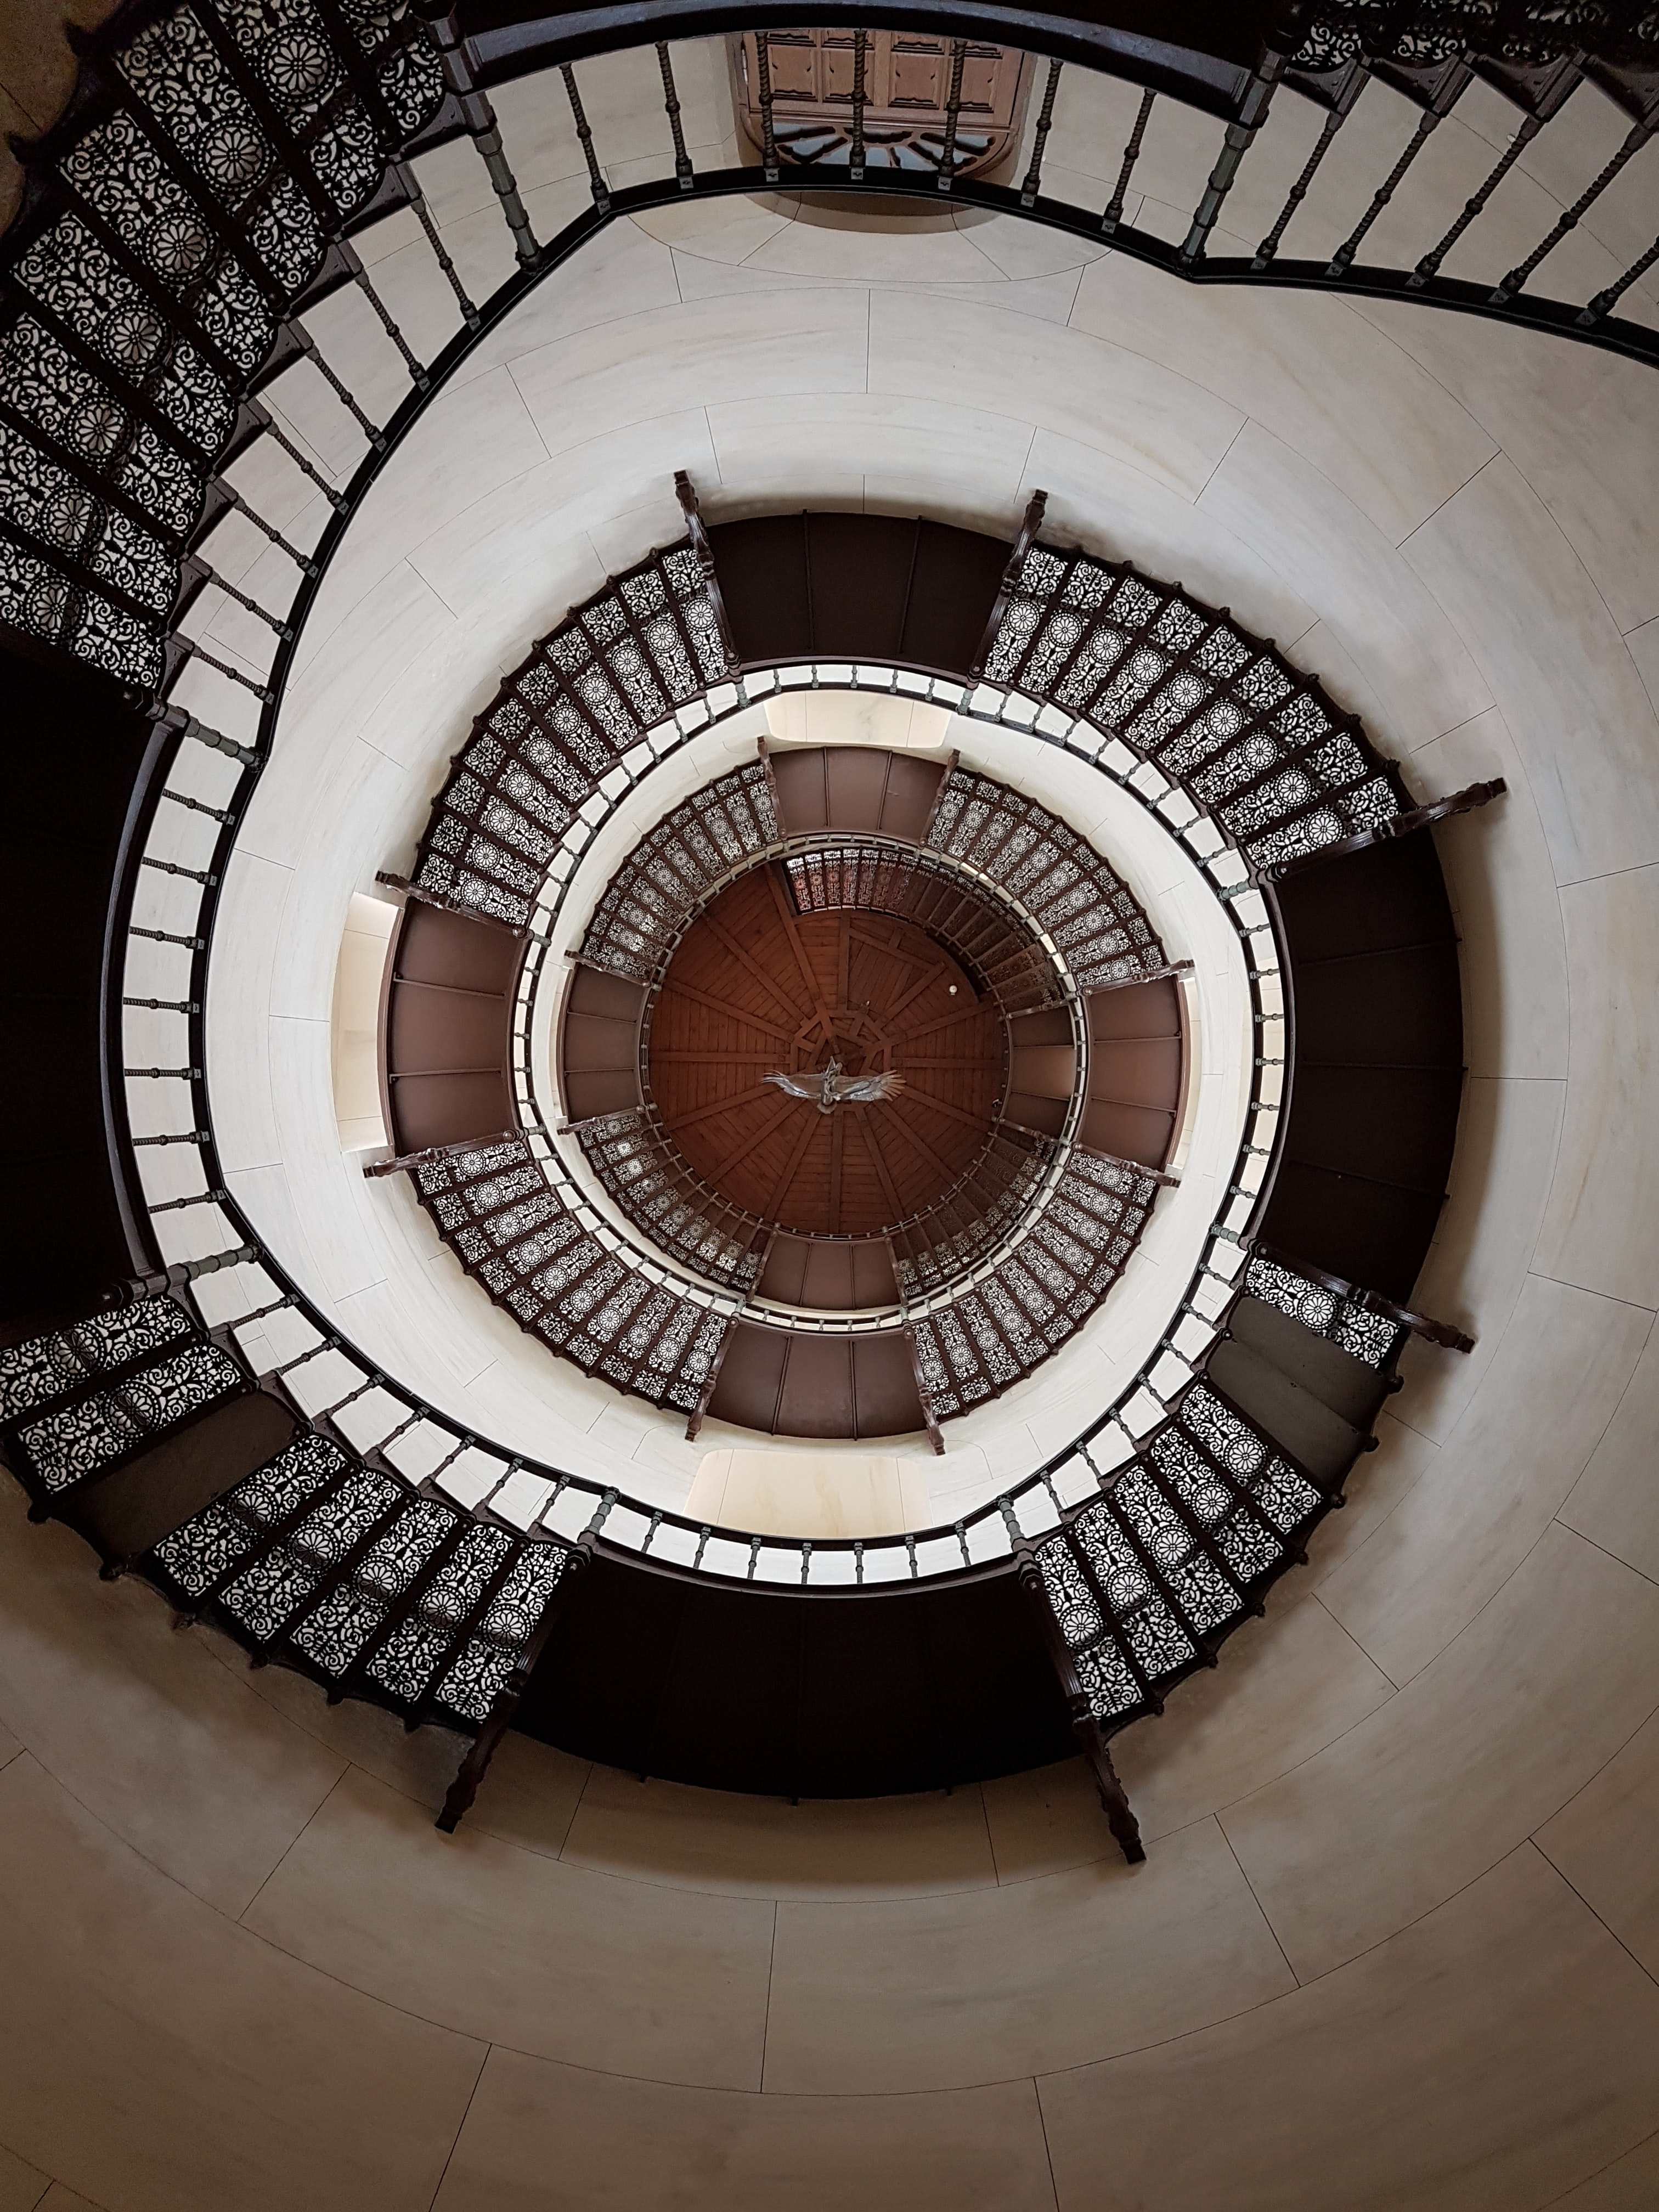 worm's-eye view photography of spiral stairs